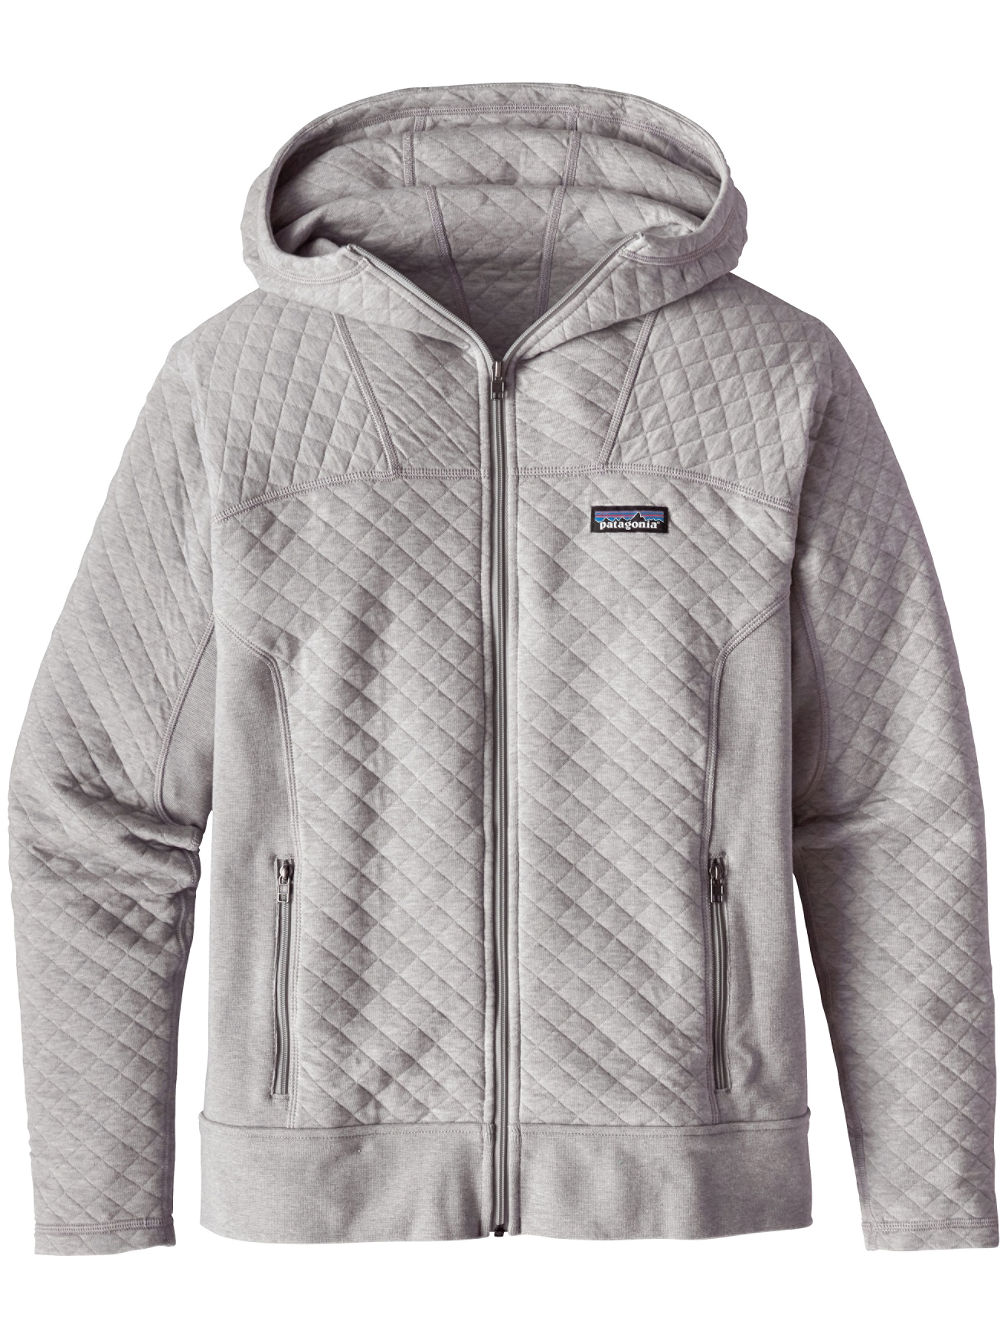 Buy Patagonia Cotton Quilt Hooded Fleece Jacket Online At